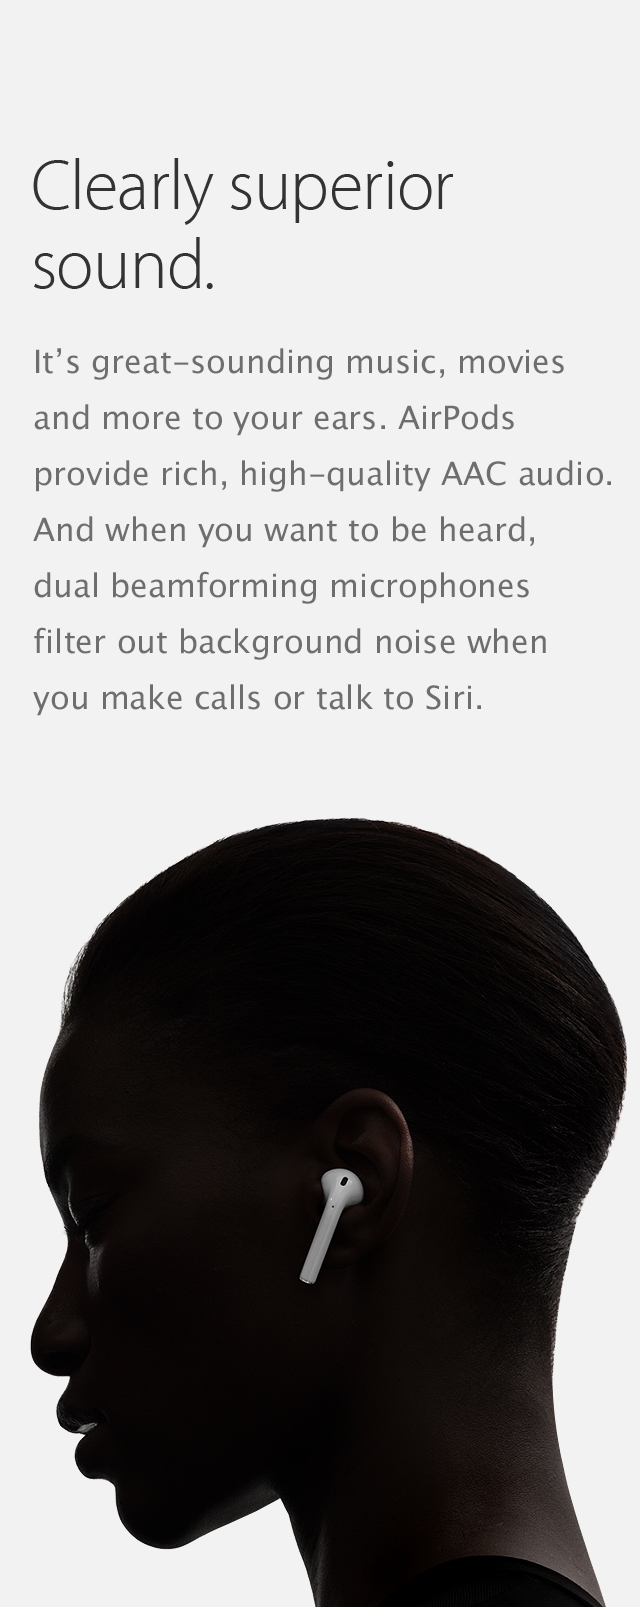 IPhone XR And AirPods